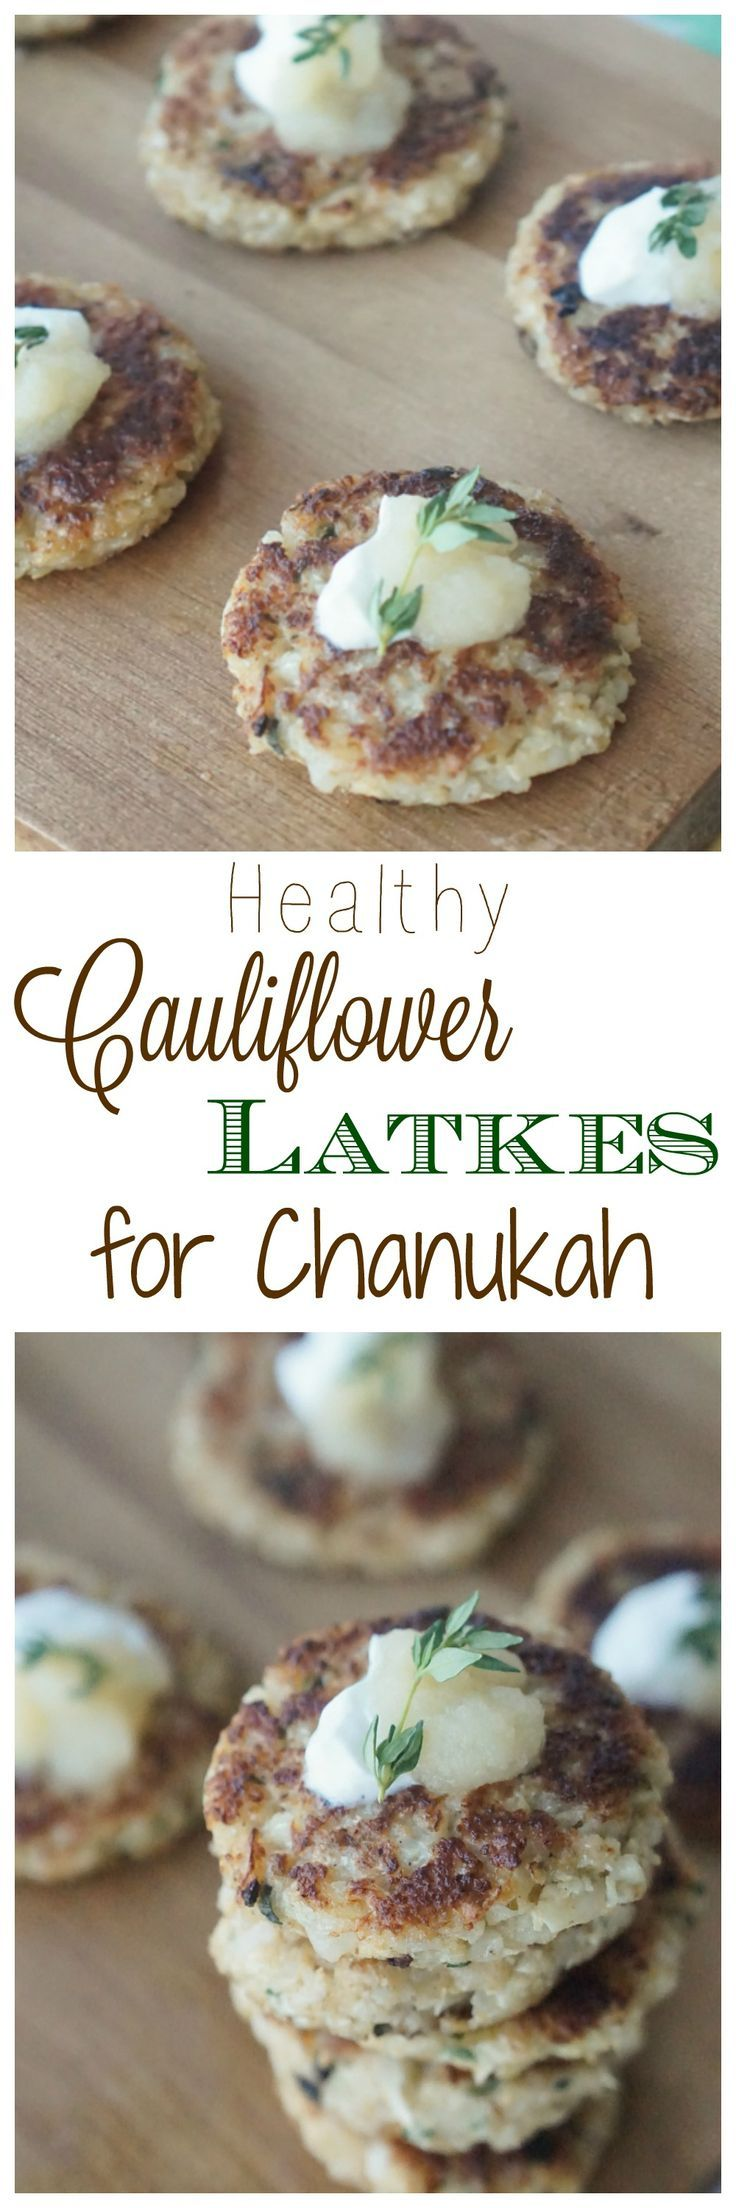 Try my  Healthy Cauliflower Latkes for Chanukah (Paleo, Low Carb, Low Fat Recipe)!